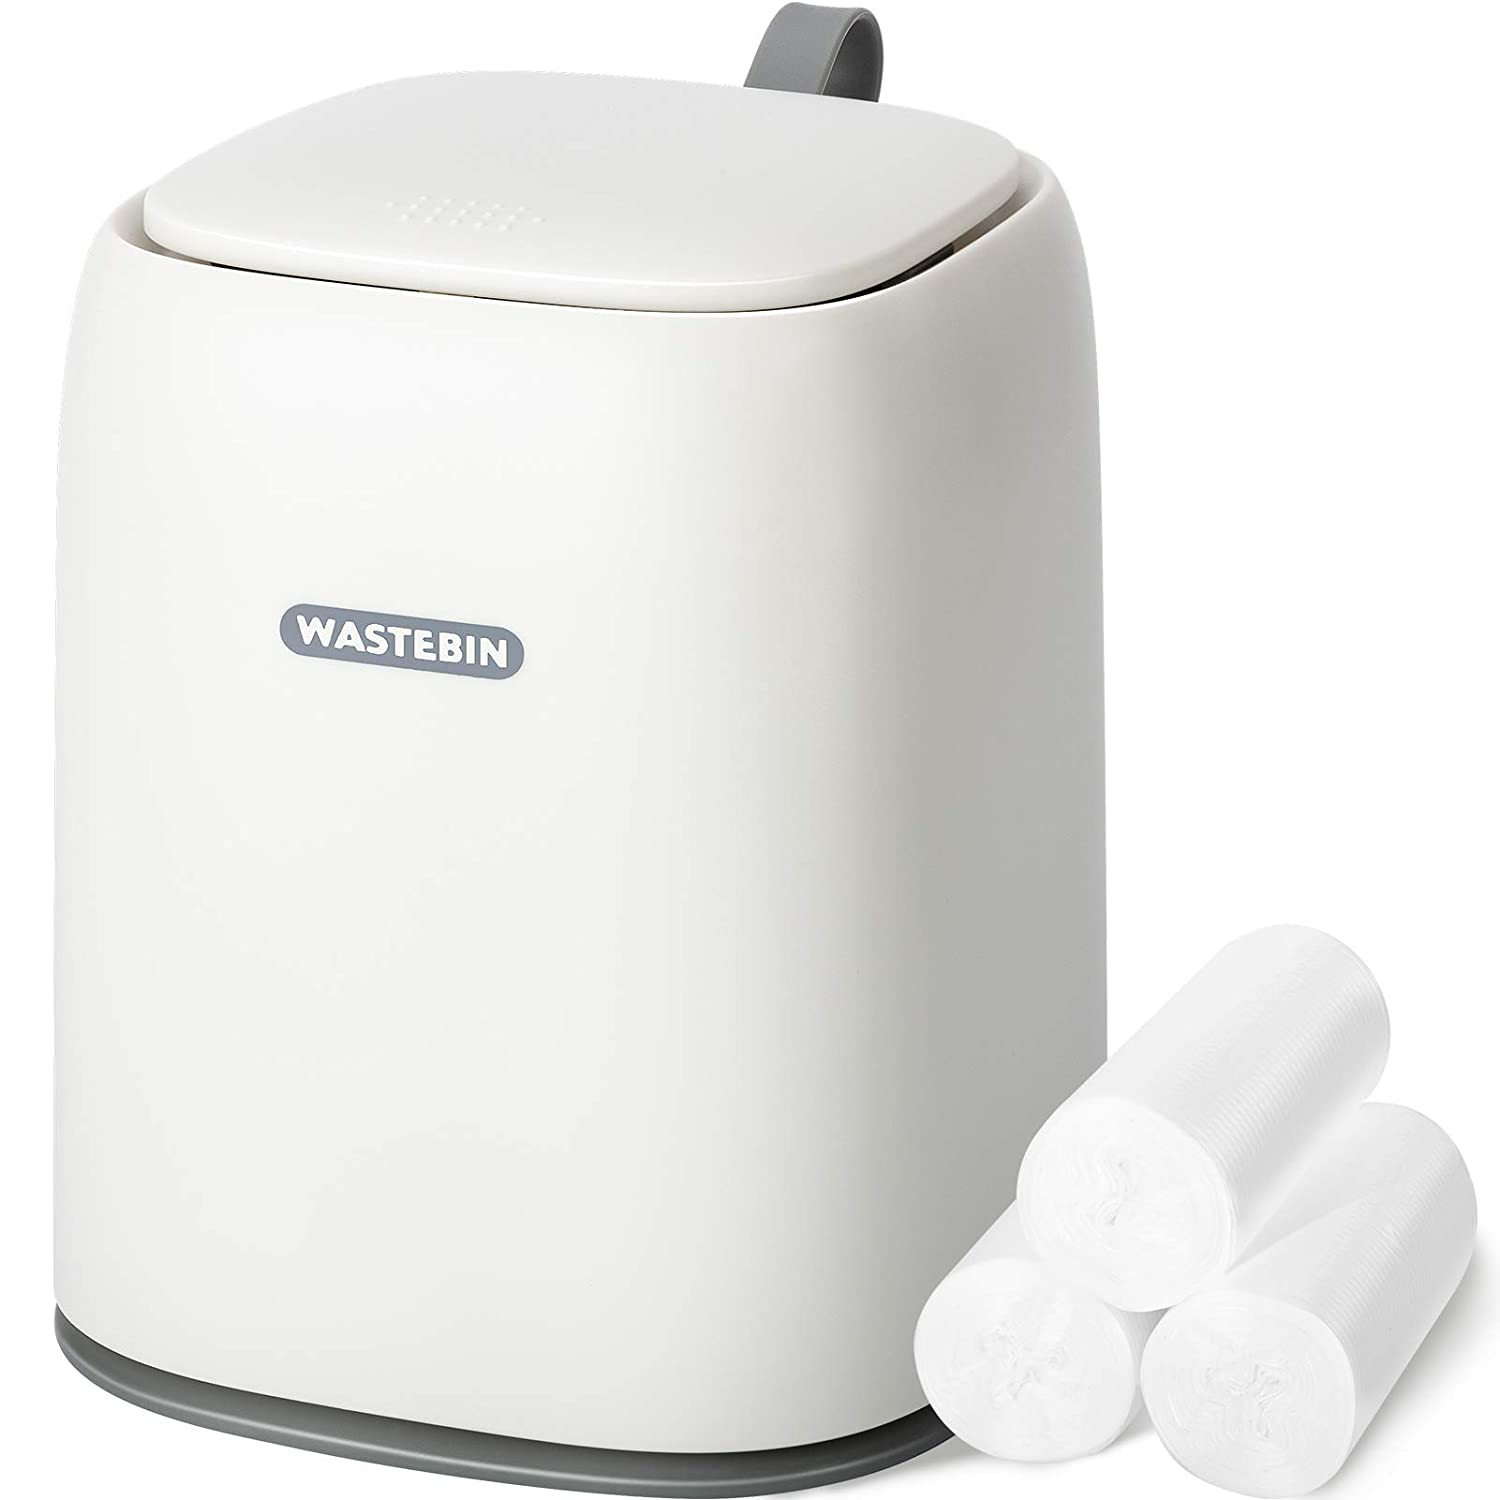 Mini Countertop Trash Can Department store Limited price sale with of Waste 3 Rolls Bags